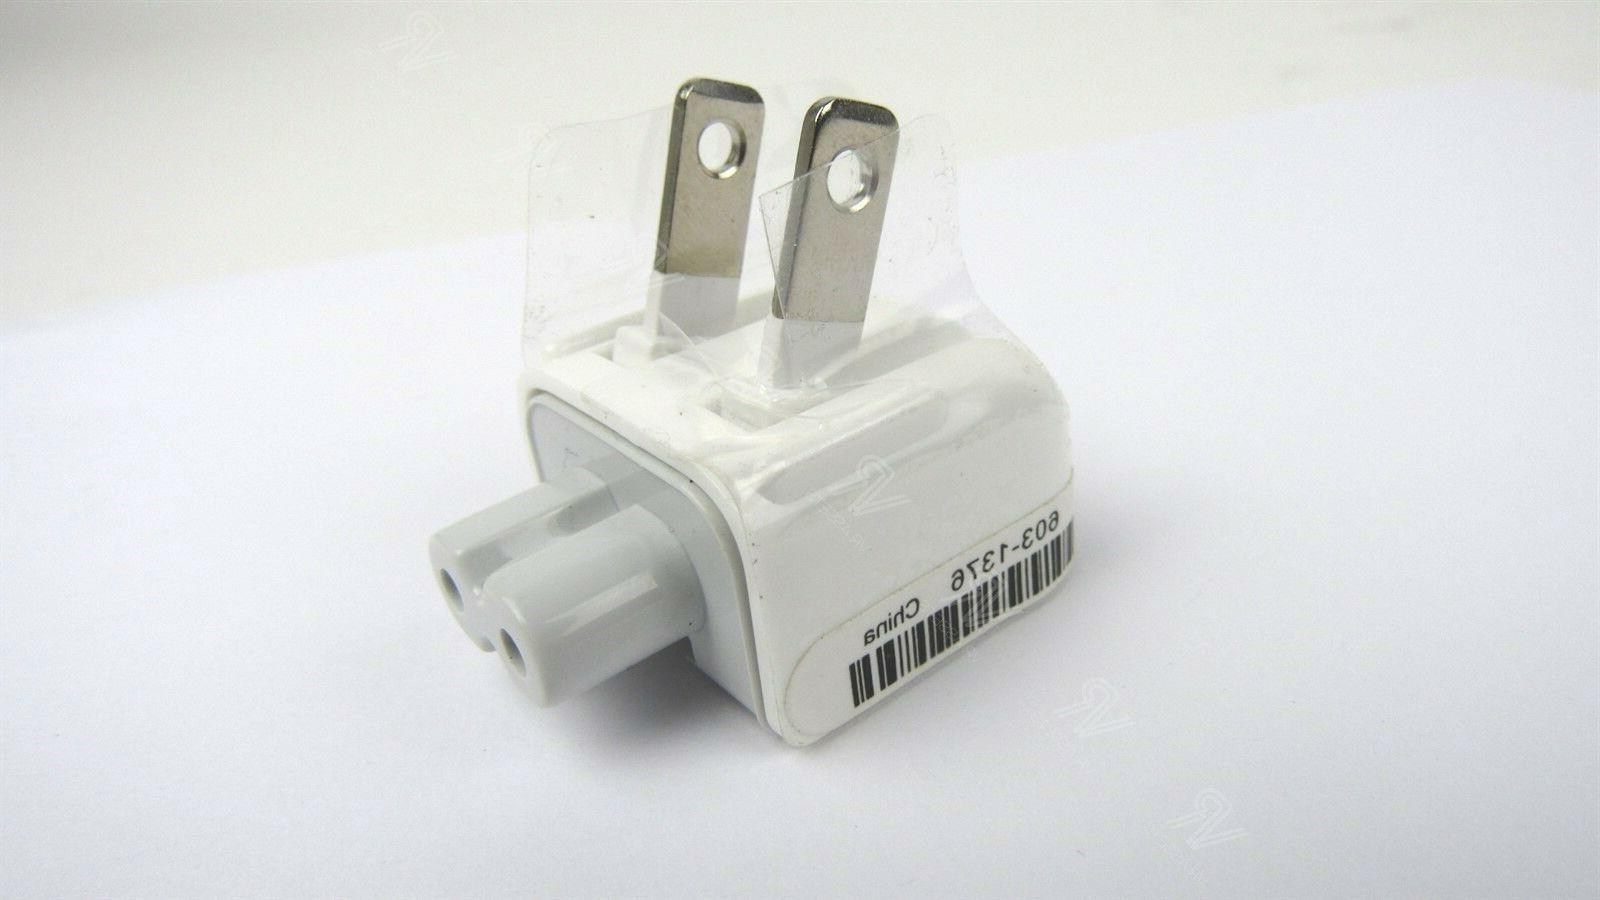 Apple Duck-Head Wall Plug Charger Adapter iPad Mac MacBook P